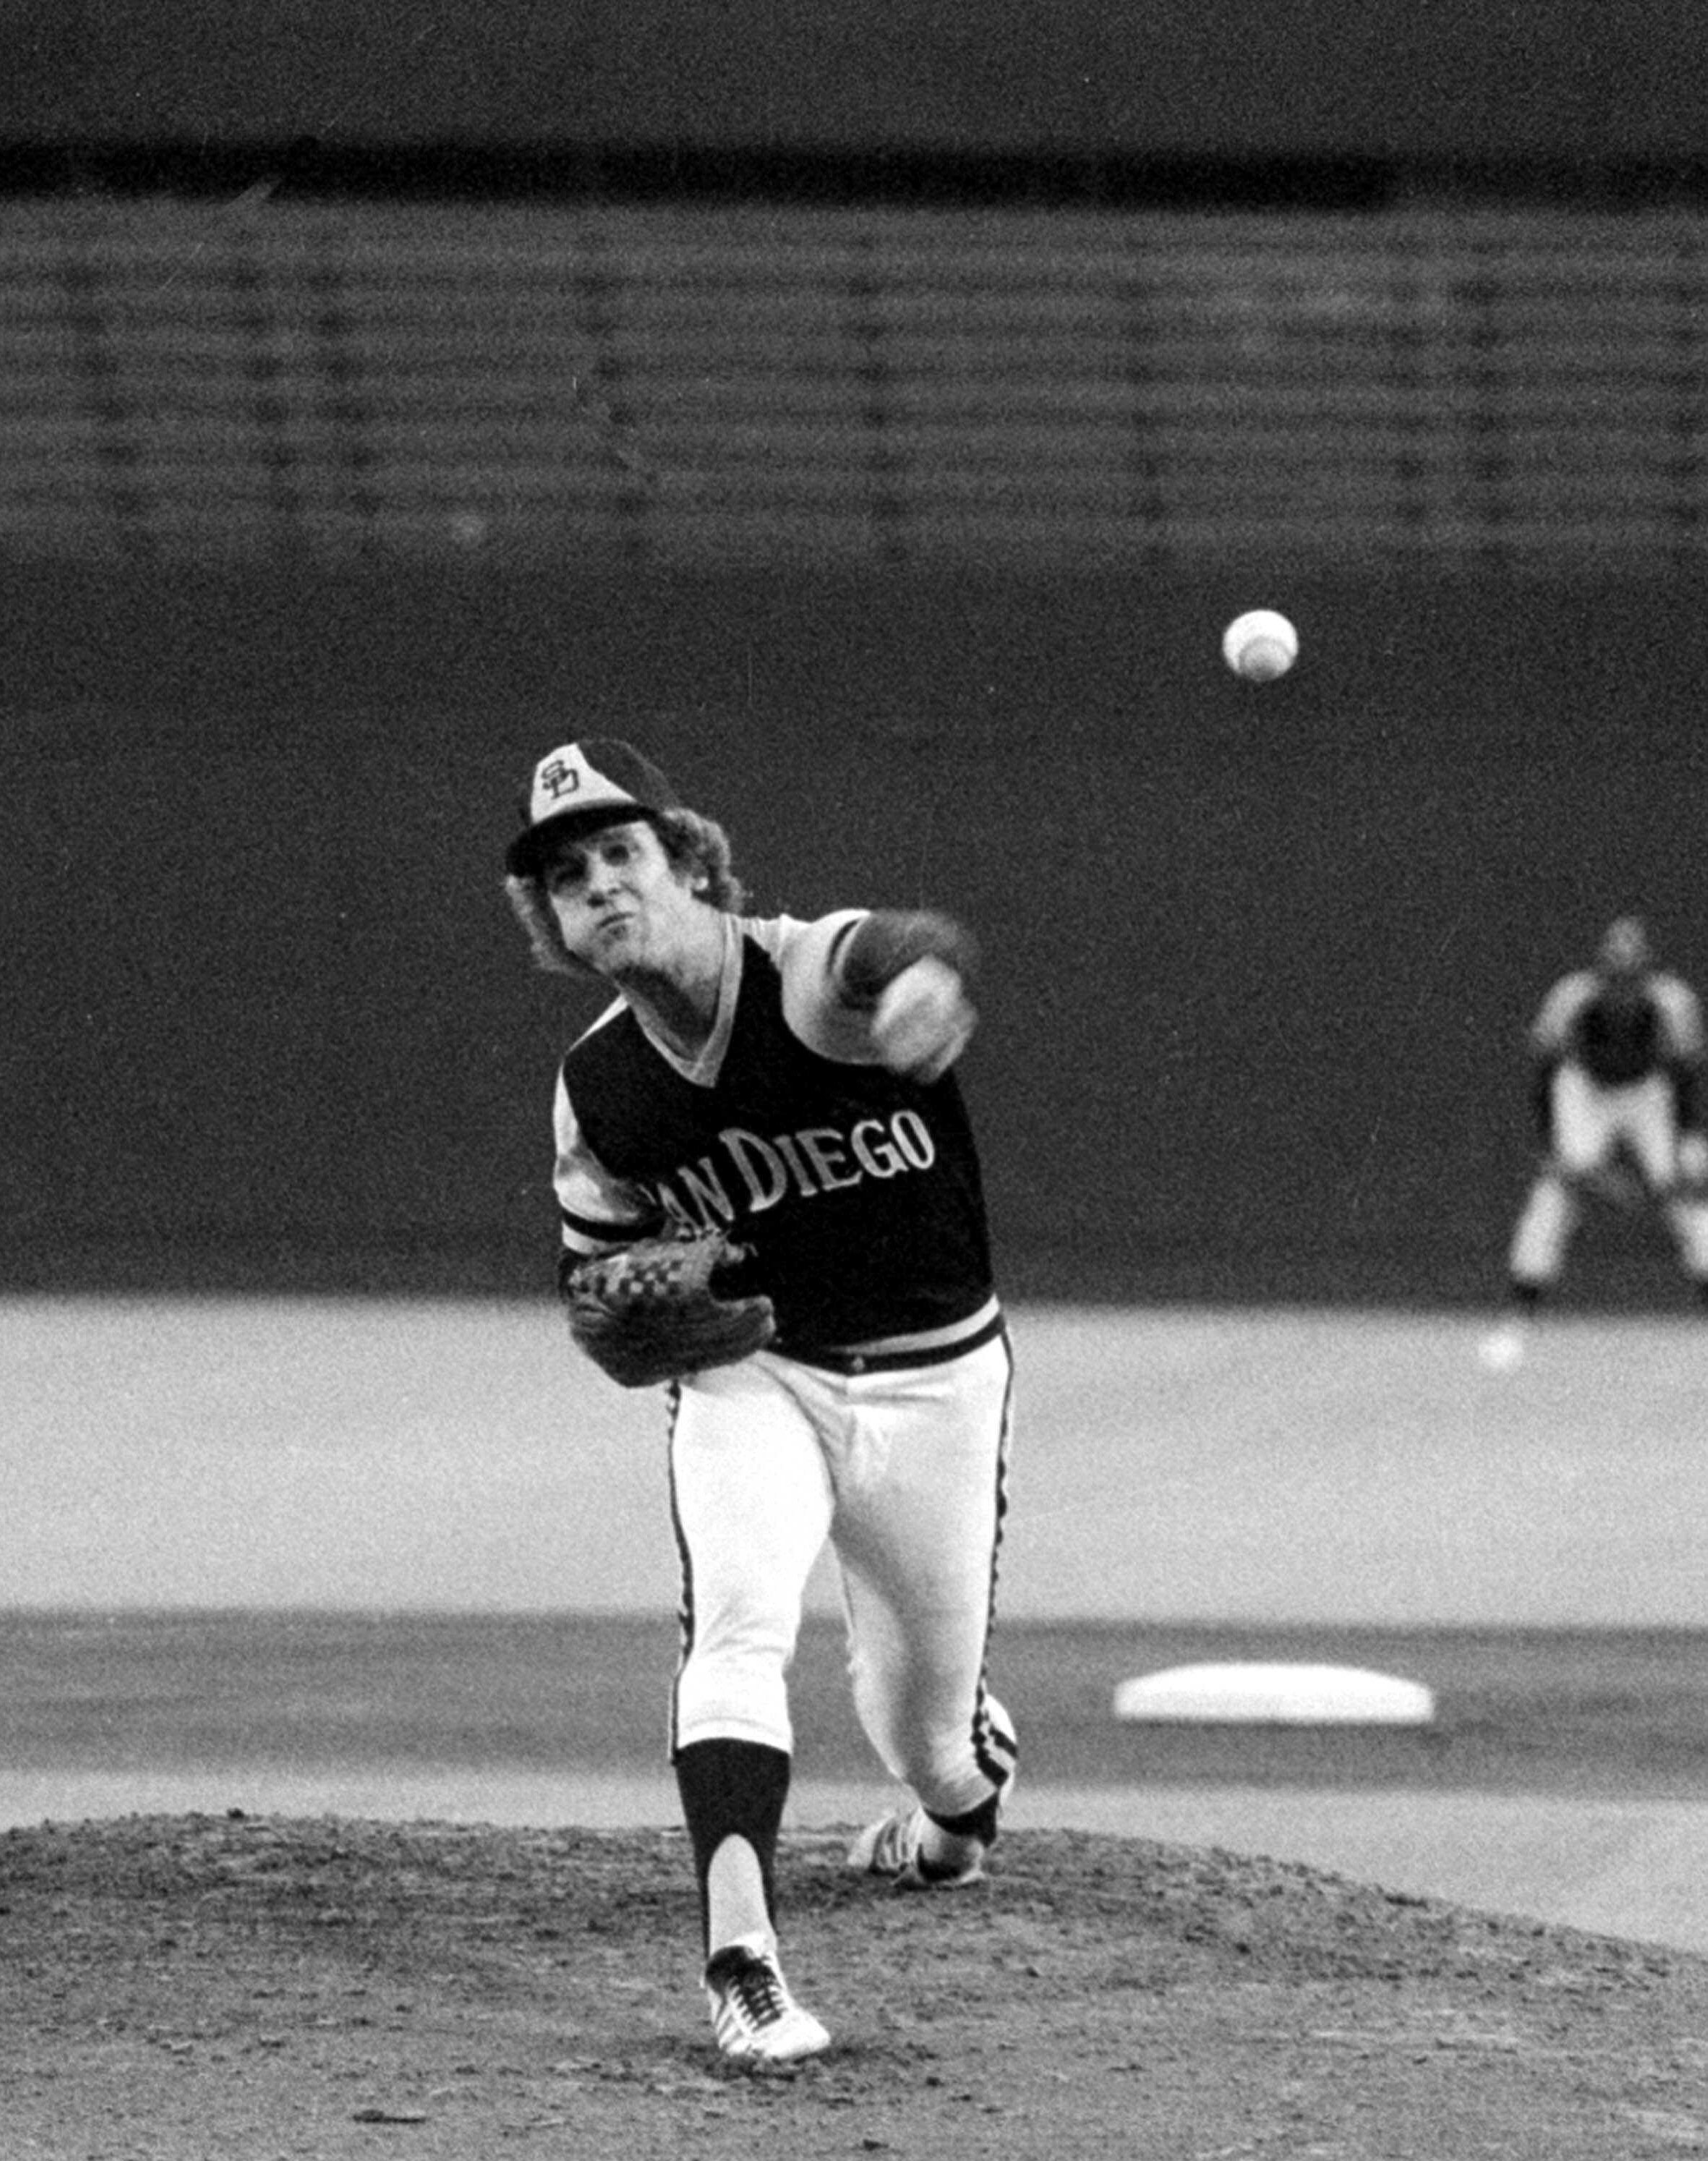 San Diego Padres pitcher Randy Jones, warms up Aug.18, 1976, for a night game at Busch Stadium in St. Louis. Jones has a 19-7 record and is hoping for number 20. (AP Photo/JAC)